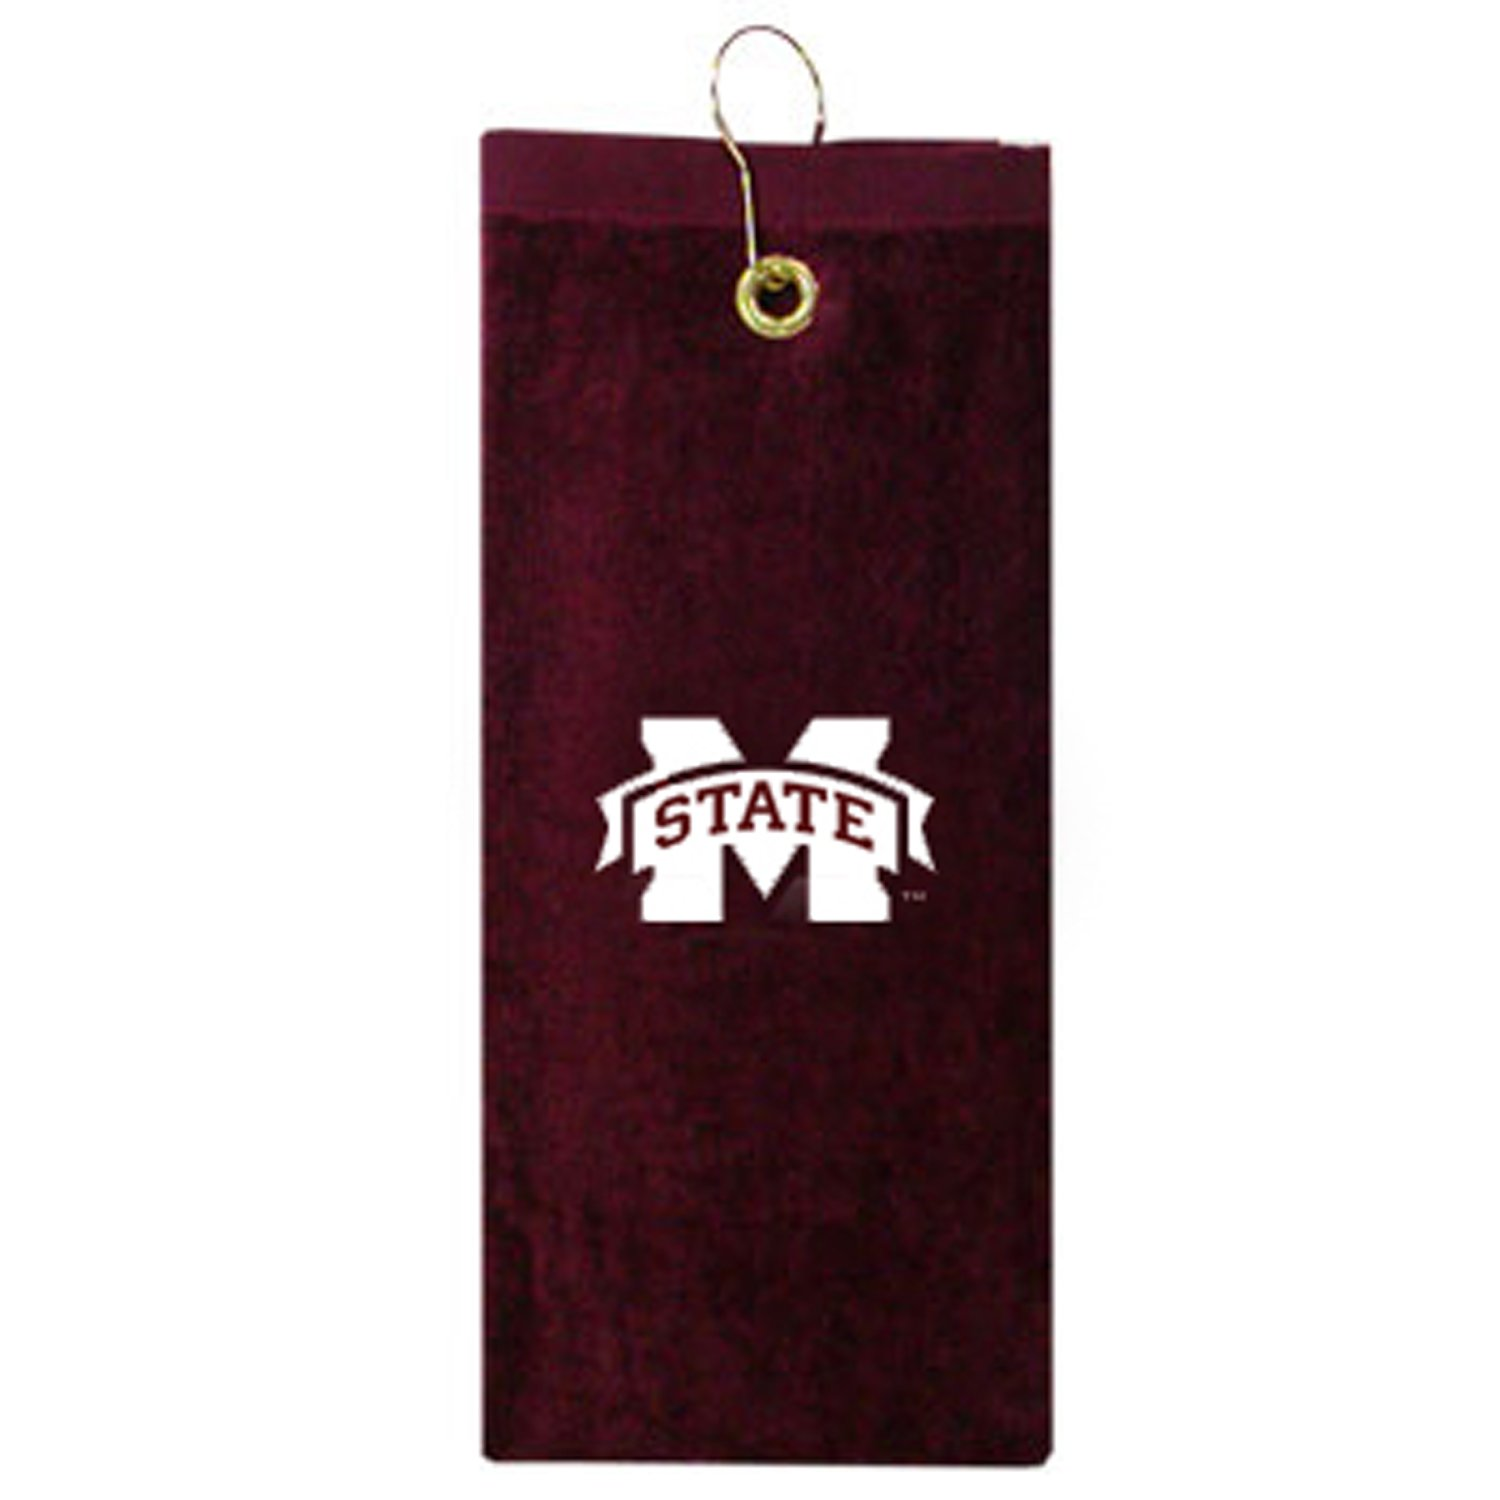 Team Golf NCAA Mississippi State Bulldogs Embroidered Golf Towel Checkered Scrubber Design Embroidered Logo